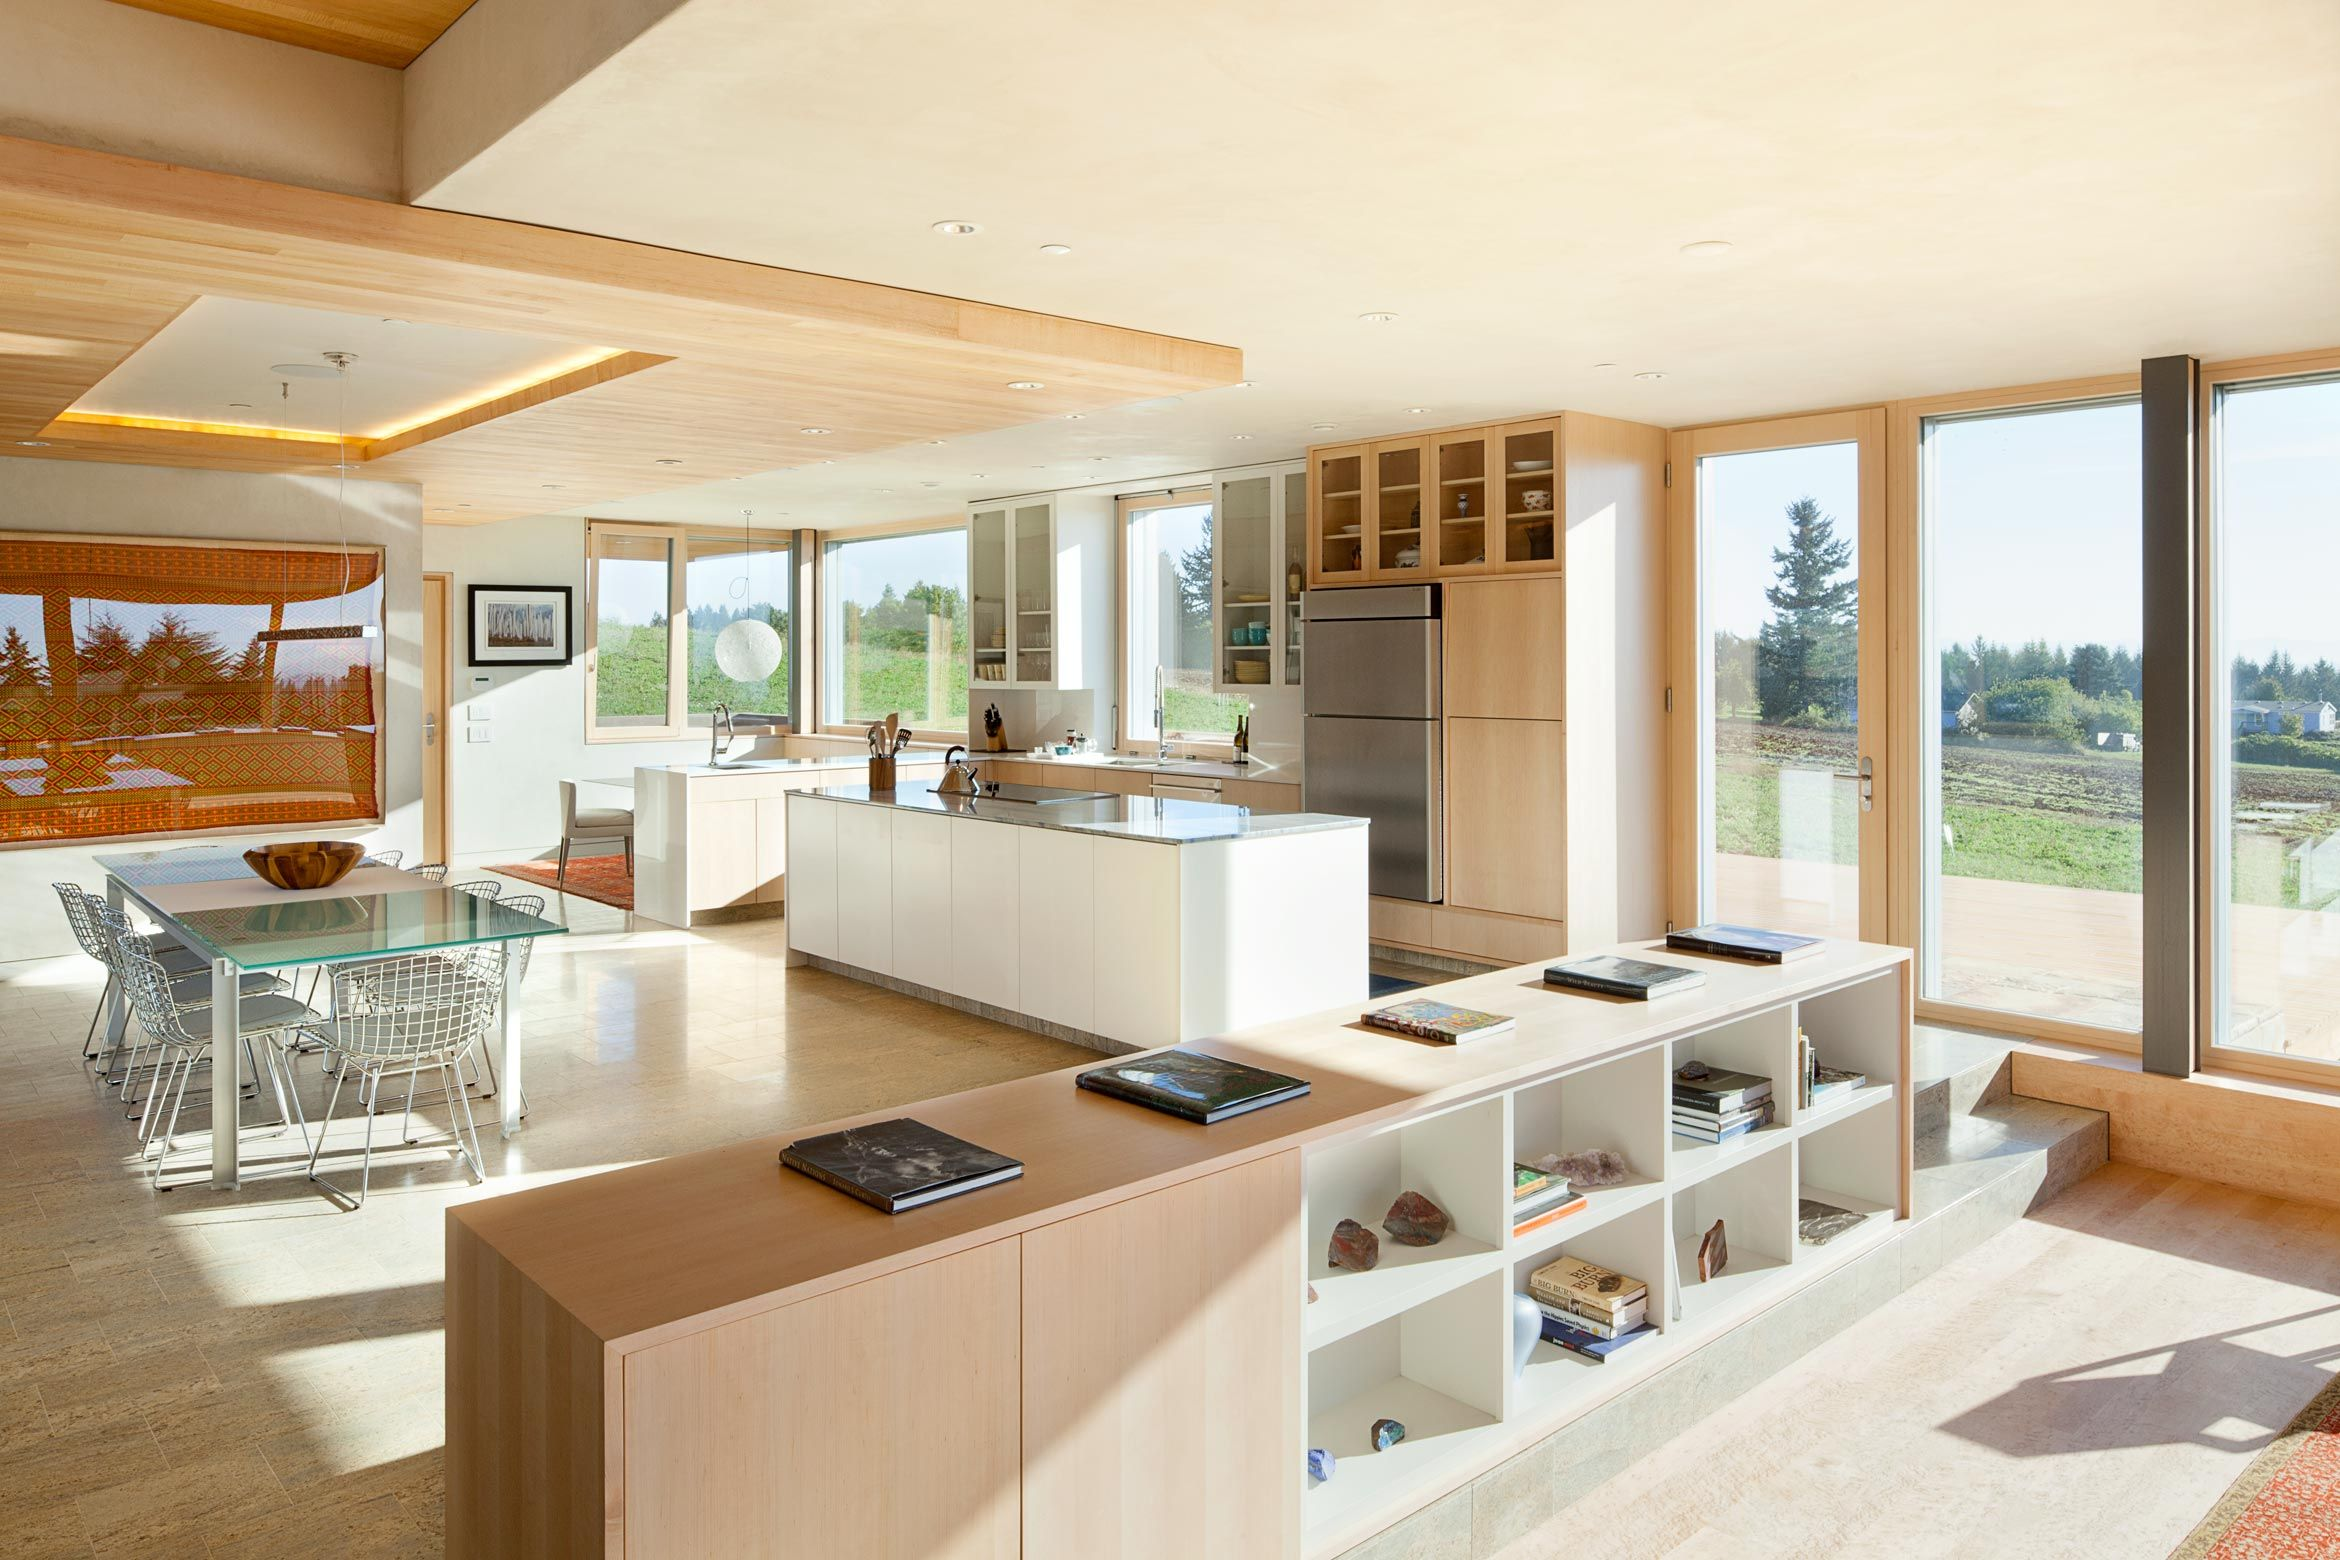 Kitchen and dining area in karuna passive house